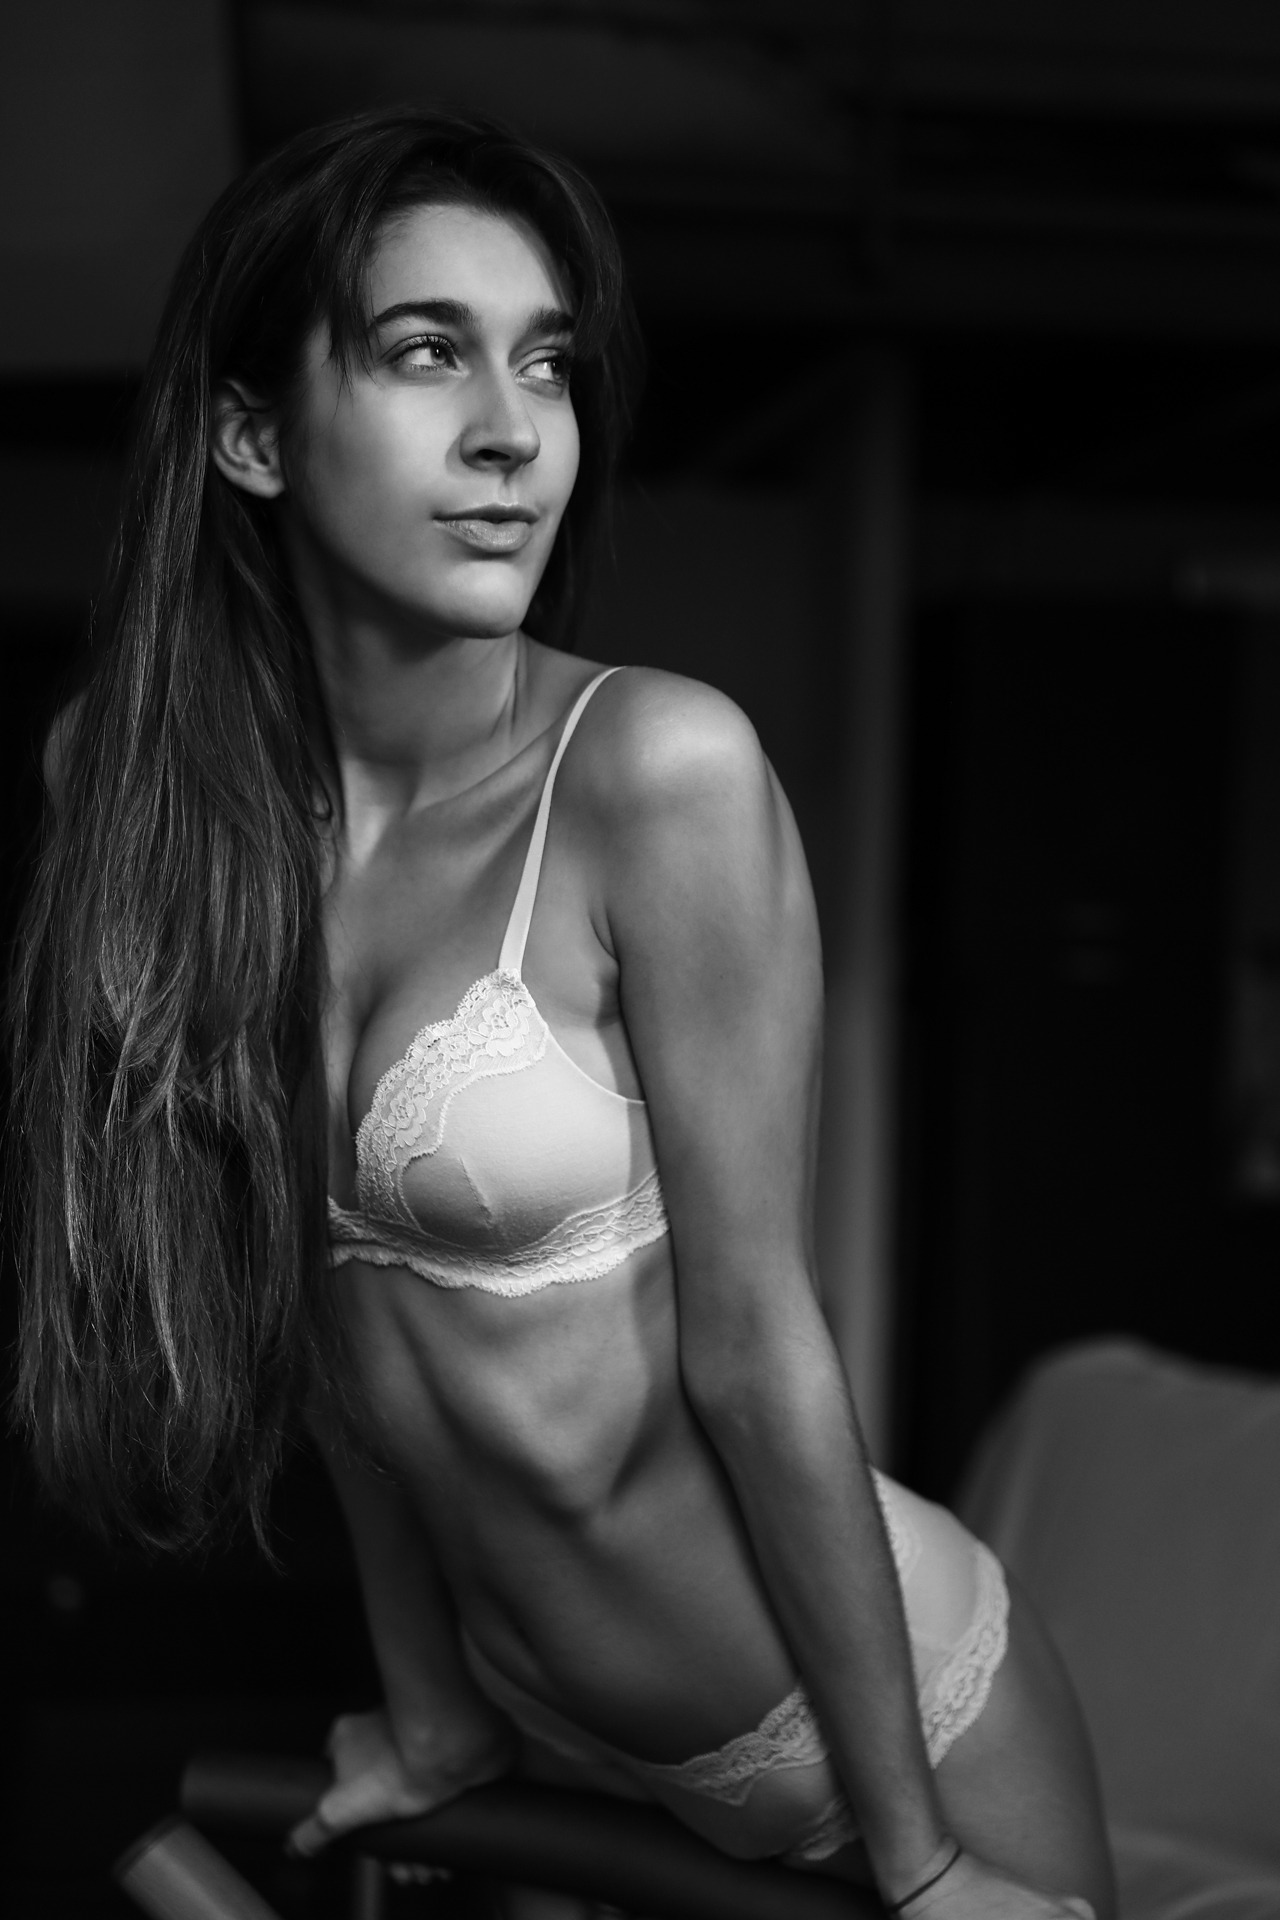 Laura by Oscar Pieri[[MORE]]A fantastic black and white series captured by the talented Milan, Italy based photographer, Oscar Pieri and starred by gorgeous model Laura Tosi...